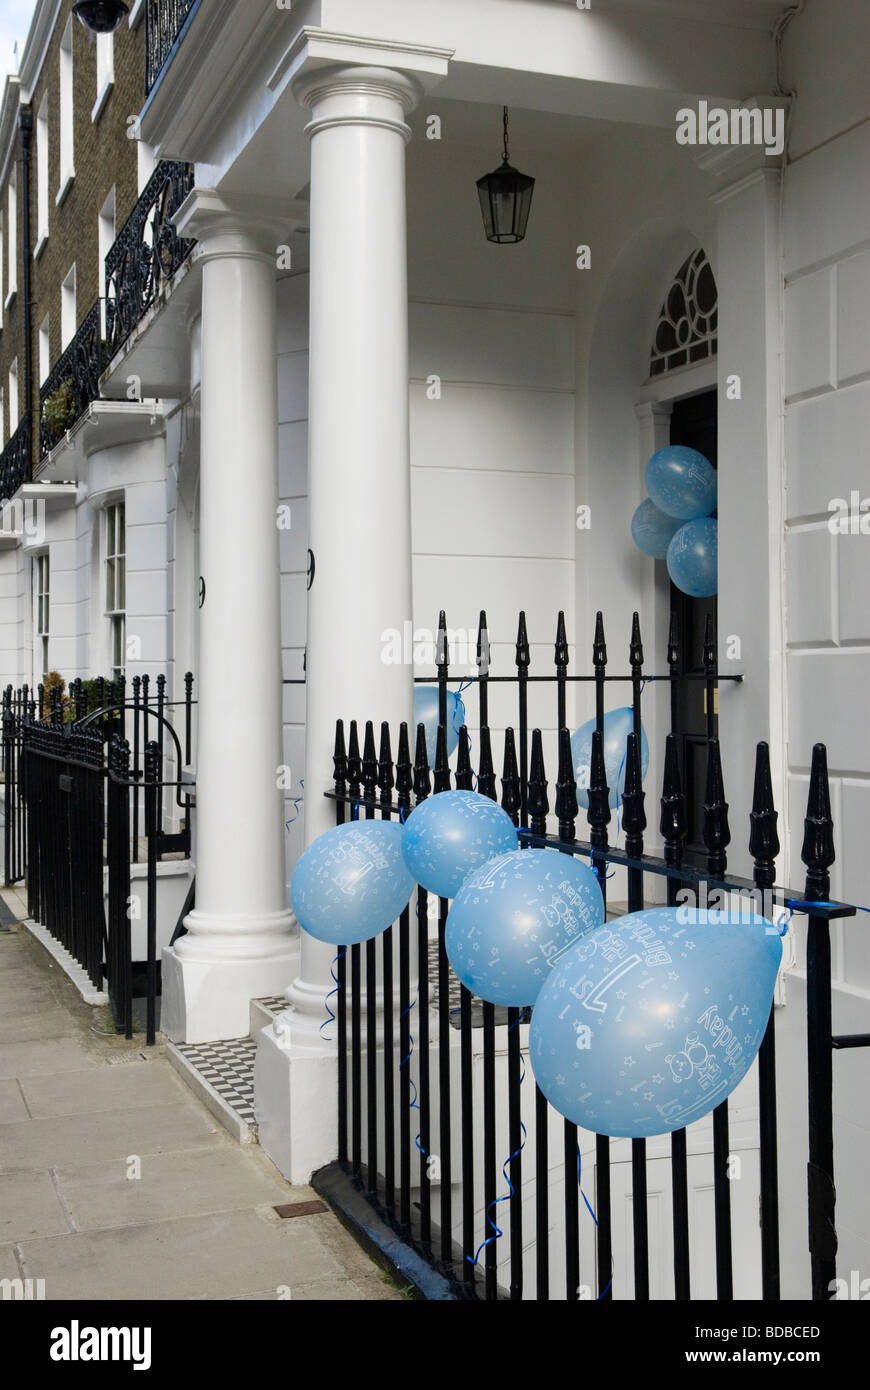 Blue Balloons For A Baby Boys First Birthday Party Tied On Front Door And Railings Outside House London UK